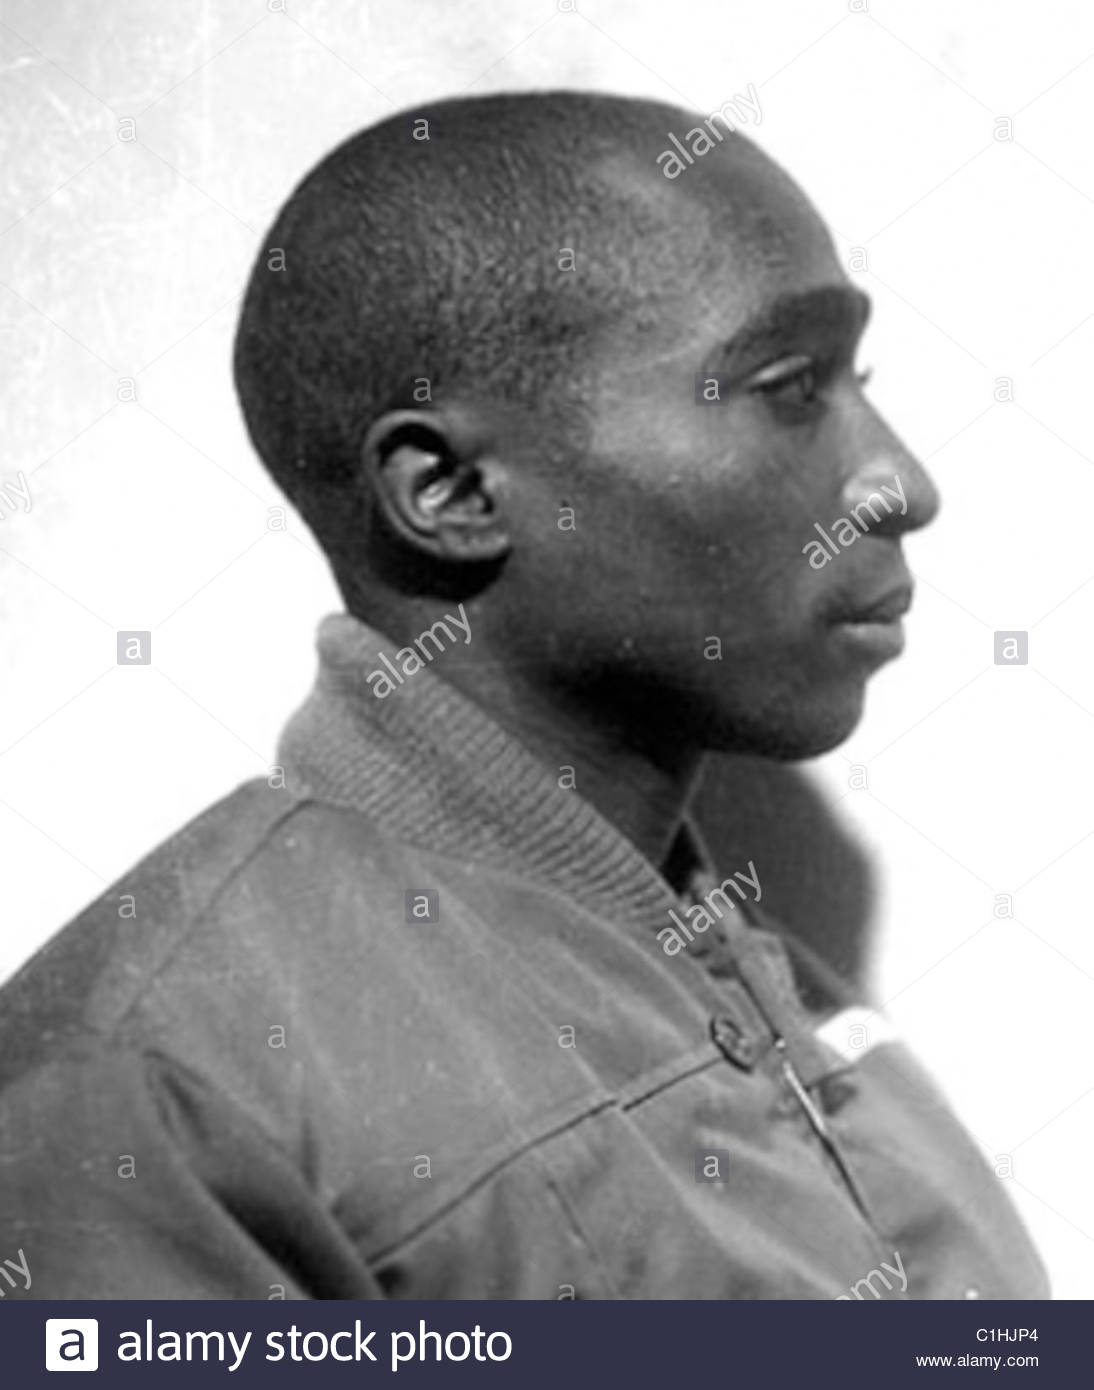 Black clear all filters page 1 of 1 tupac shakur mugshot stock image